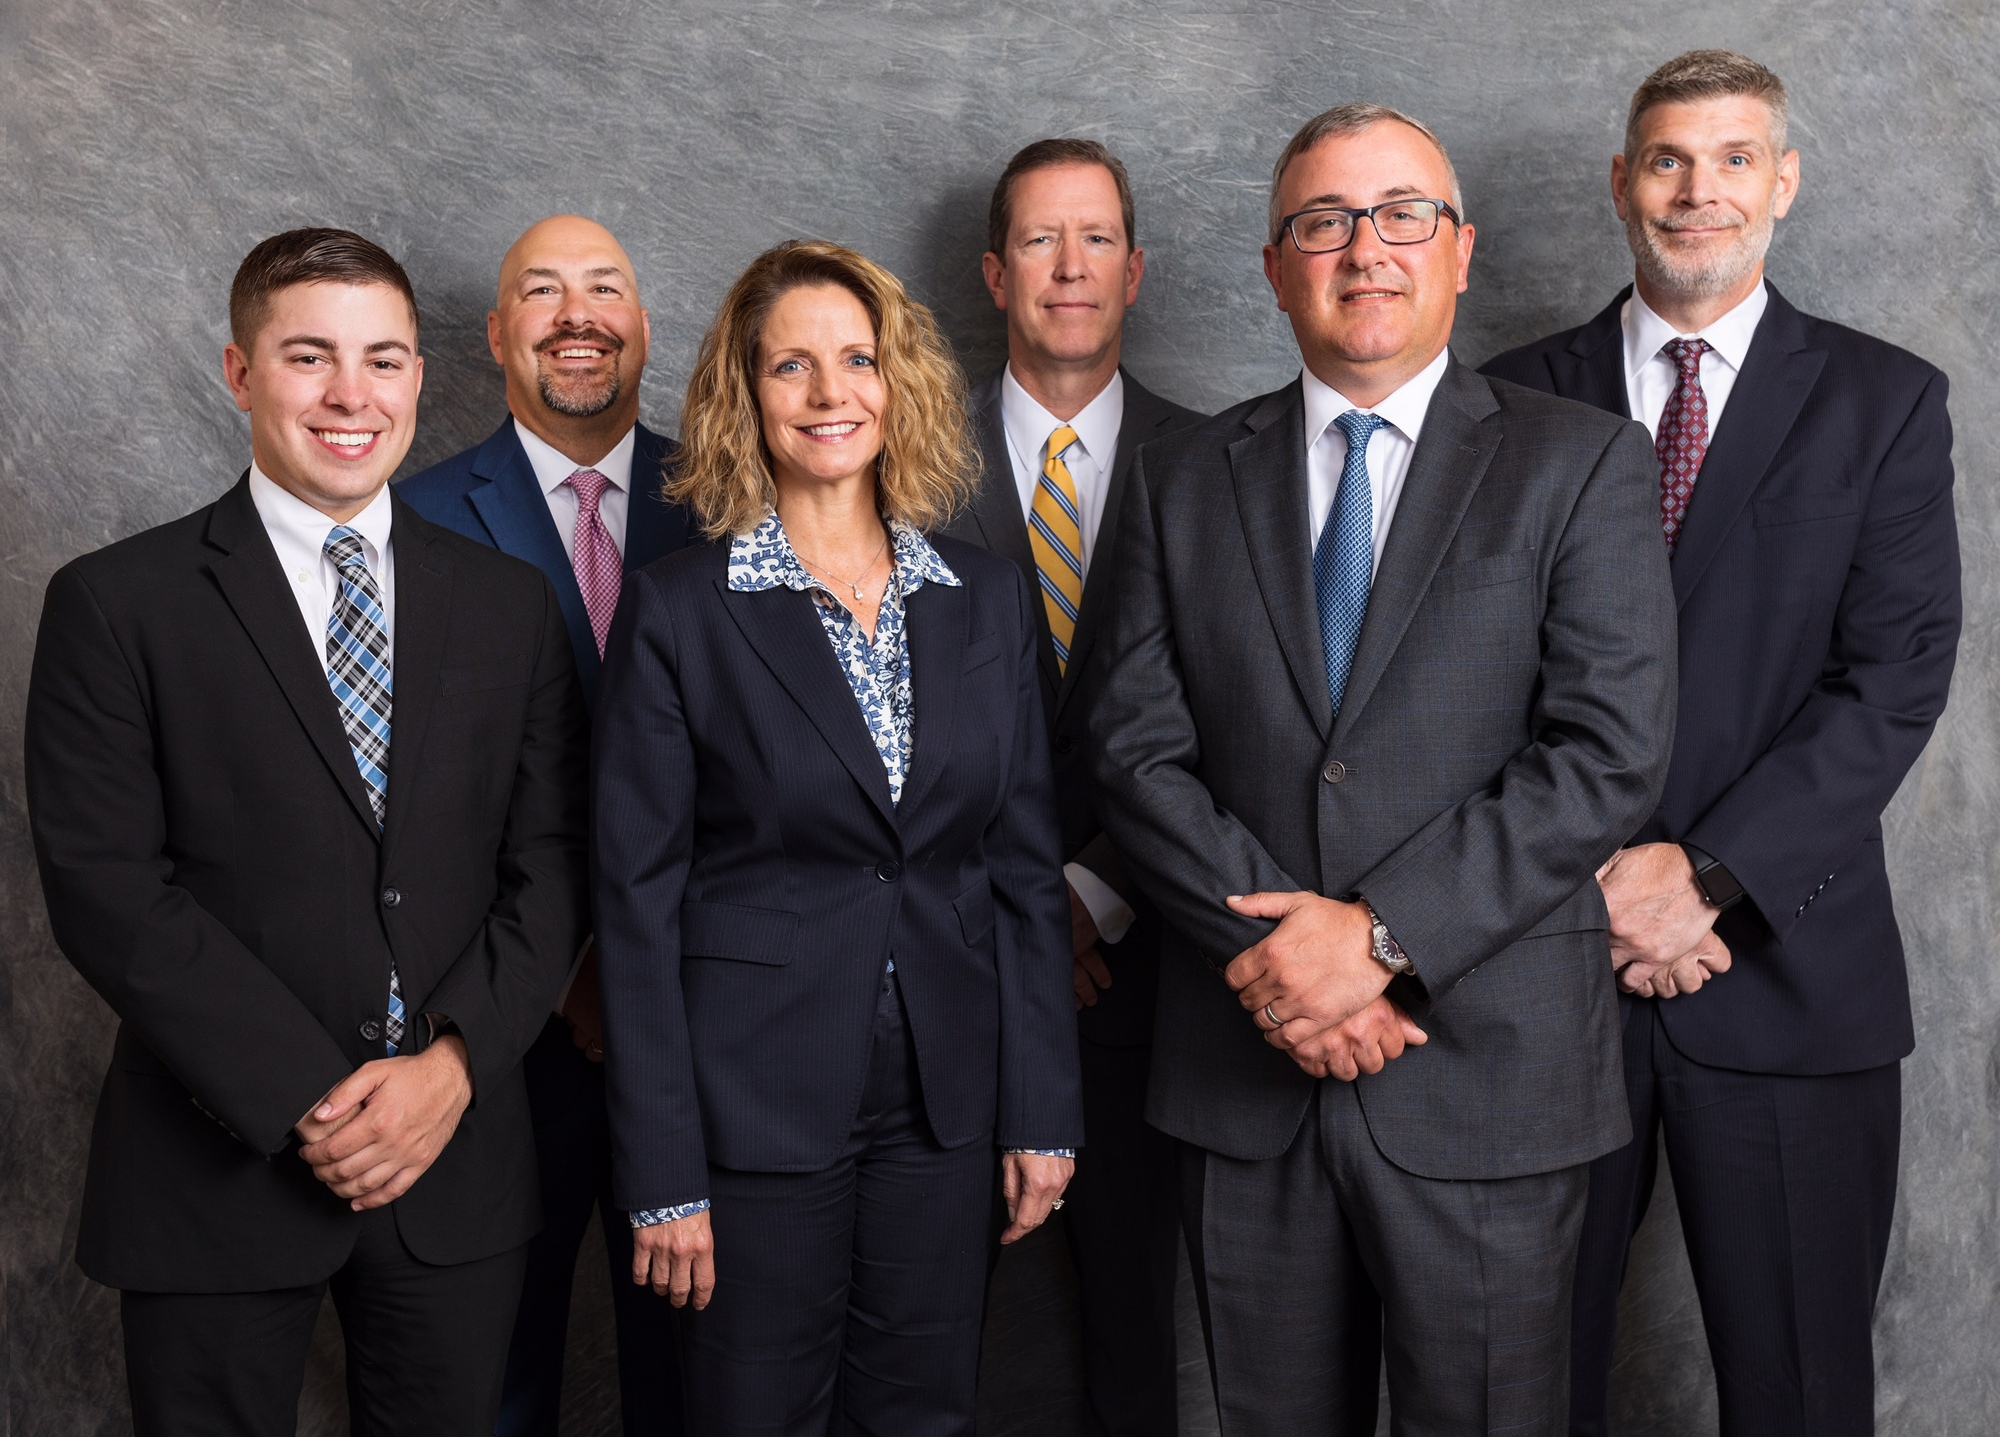 From left to right: Douglas Krapf, Alexander Shannon, Matthew Shannon, john Shannon, James Barsella, Sharon Whitacre and David Wohlabaugh